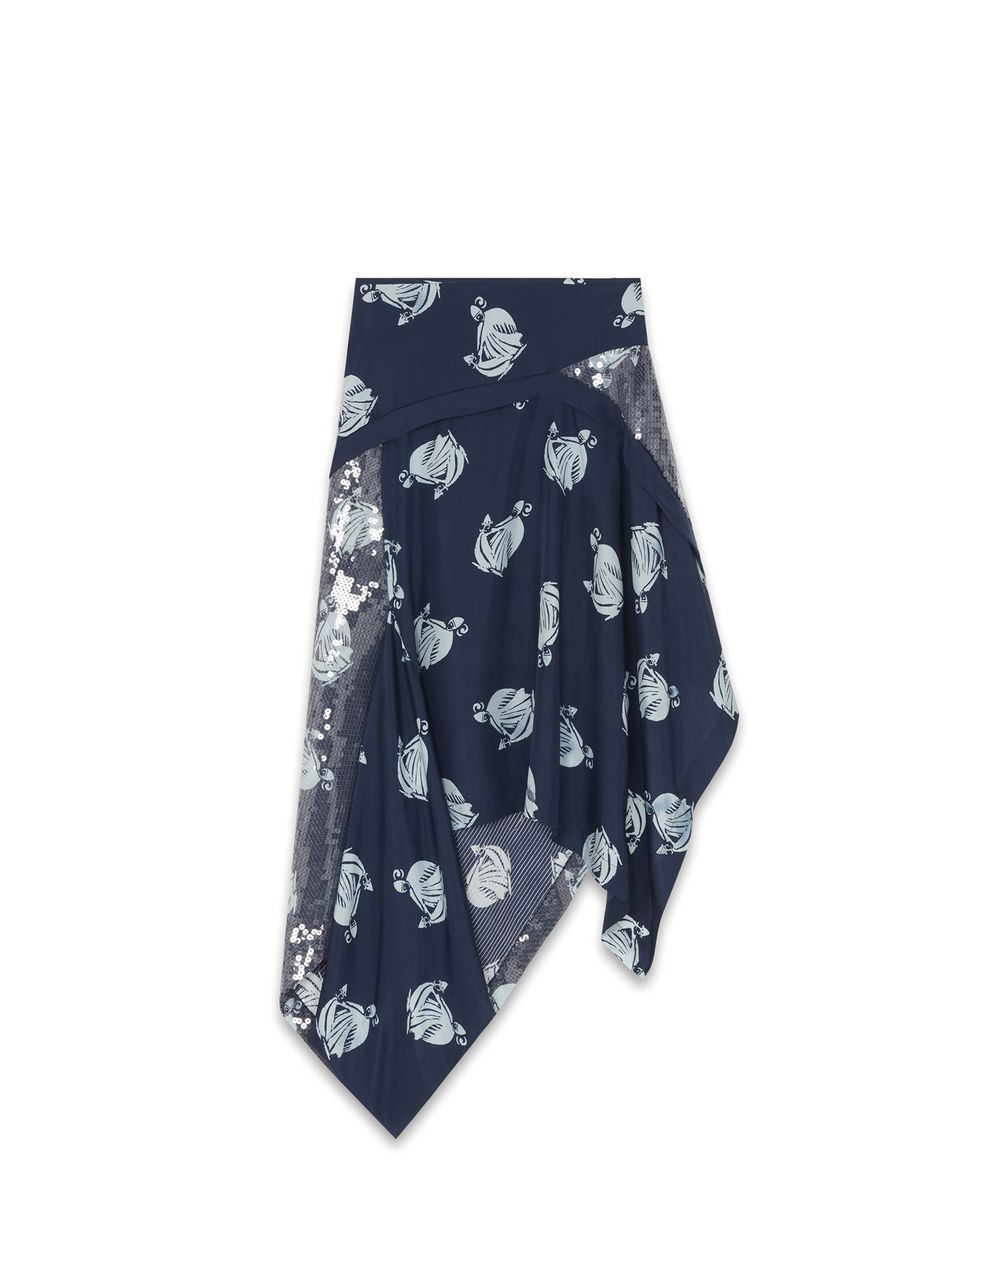 MOTHER AND CHILD LOGO ASYMMETRIC SKIRT WITH SEQUINS - Lanvin